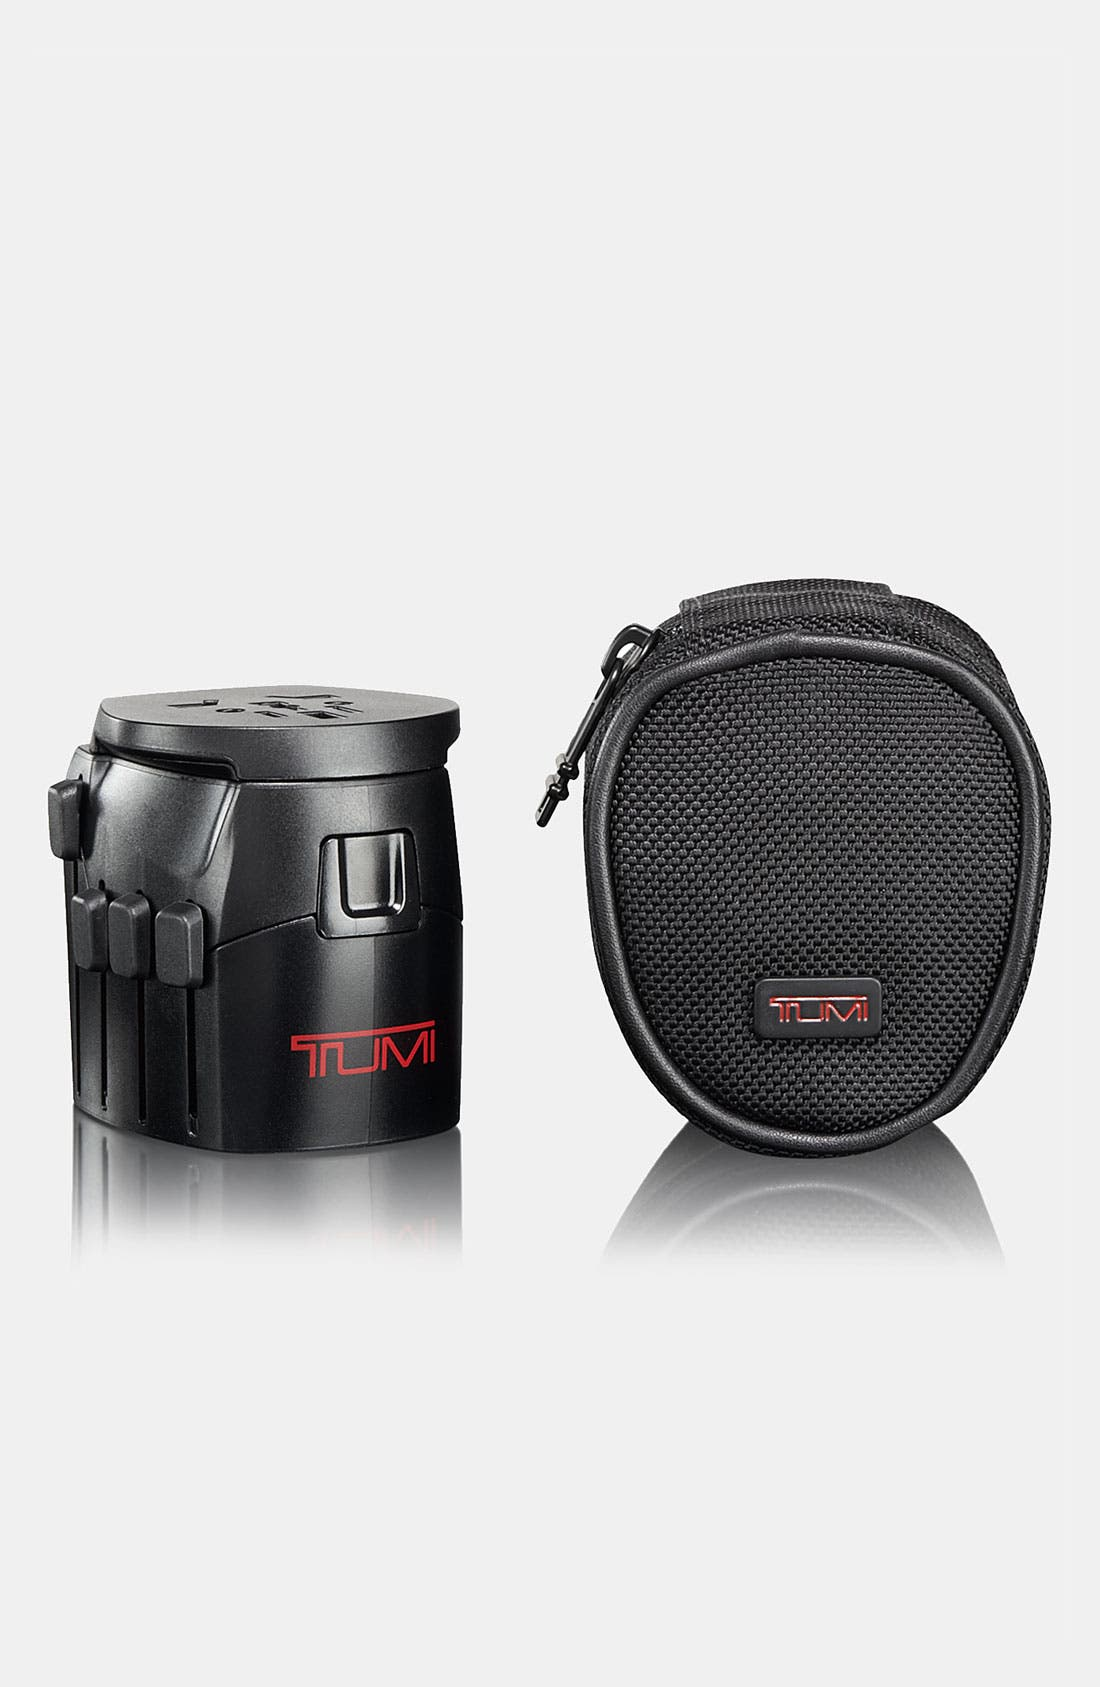 Main Image - Tumi Grounded Electric Travel Adaptor with Ballistic Nylon Case